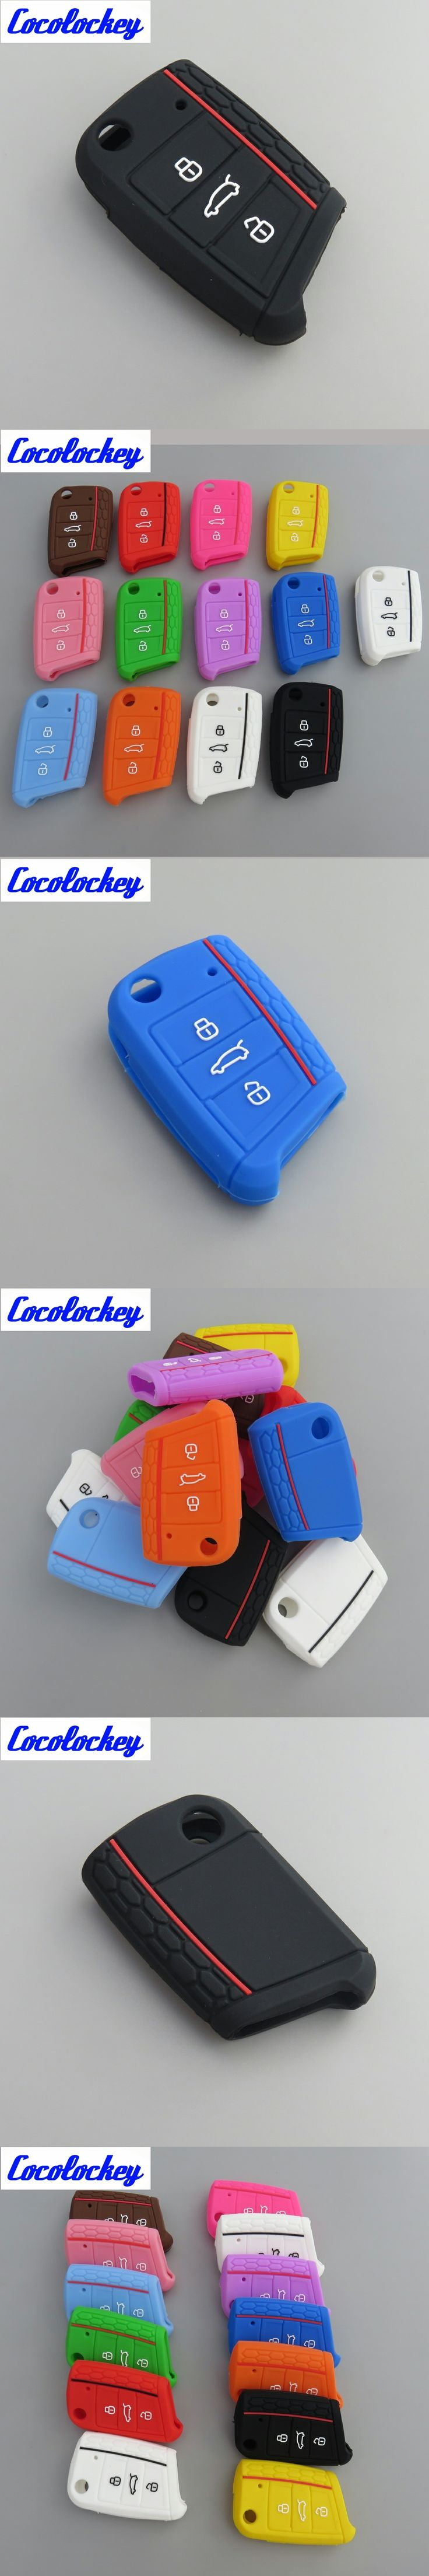 Cocolockey Silicone Car Key Cover Case Holder for VW Polo 2016 Golf 7 MK7 for Skoda Octavia Combi A7 for SEAT Leon Ibiza CUPTRA